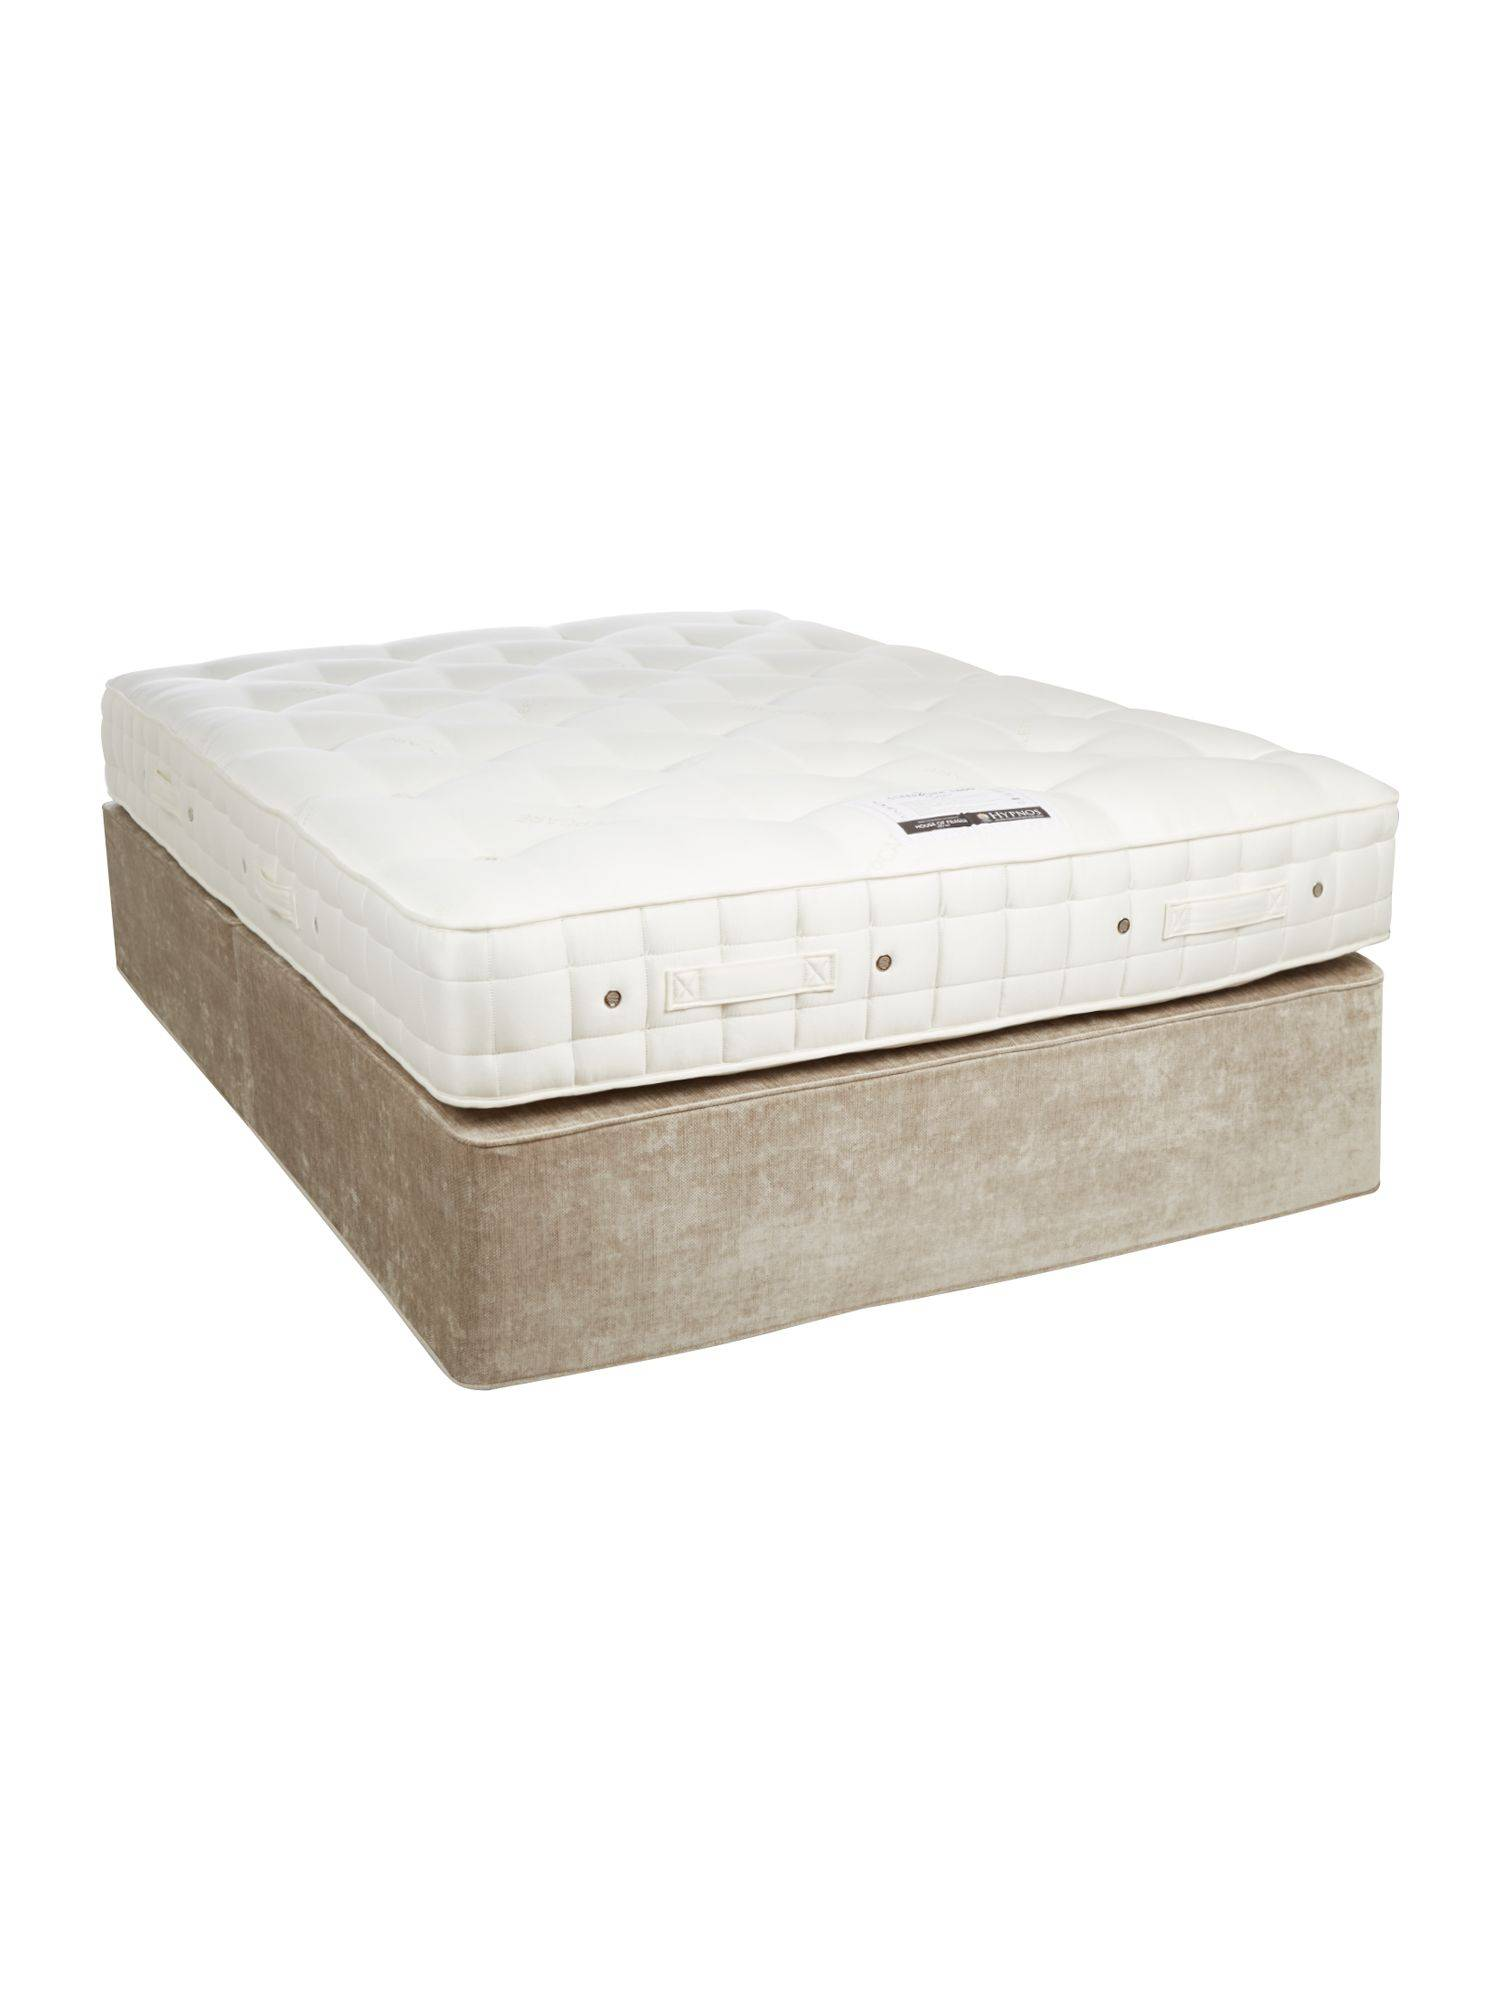 LINEA Home by Hypnos Sleepcare 1800 double SE set marble